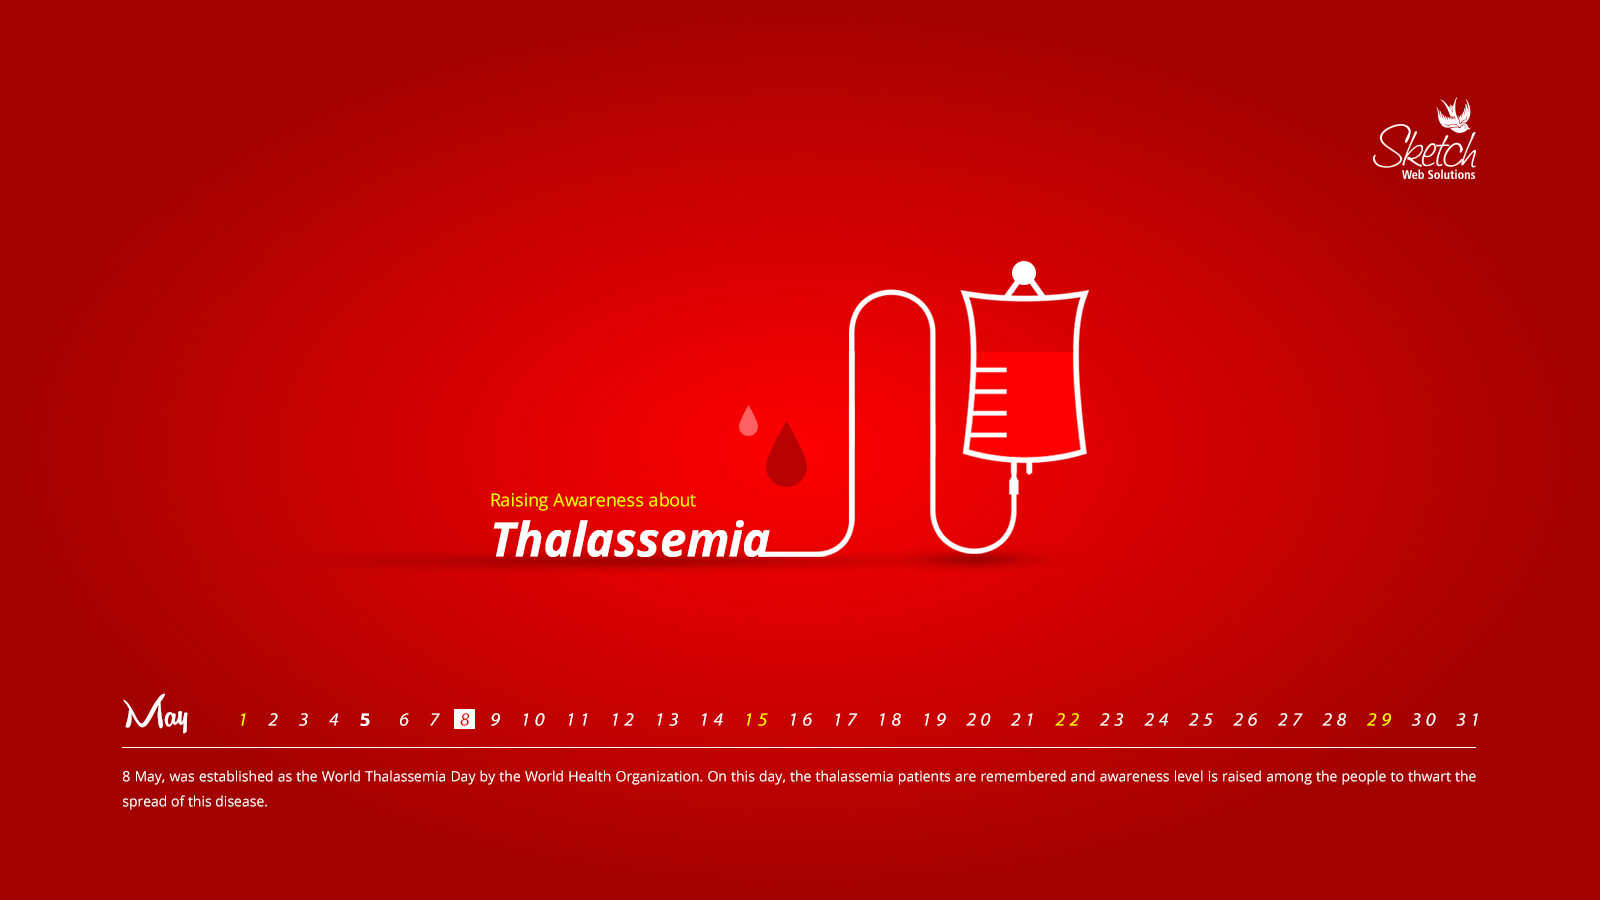 Raising Awareness about Thalassemia